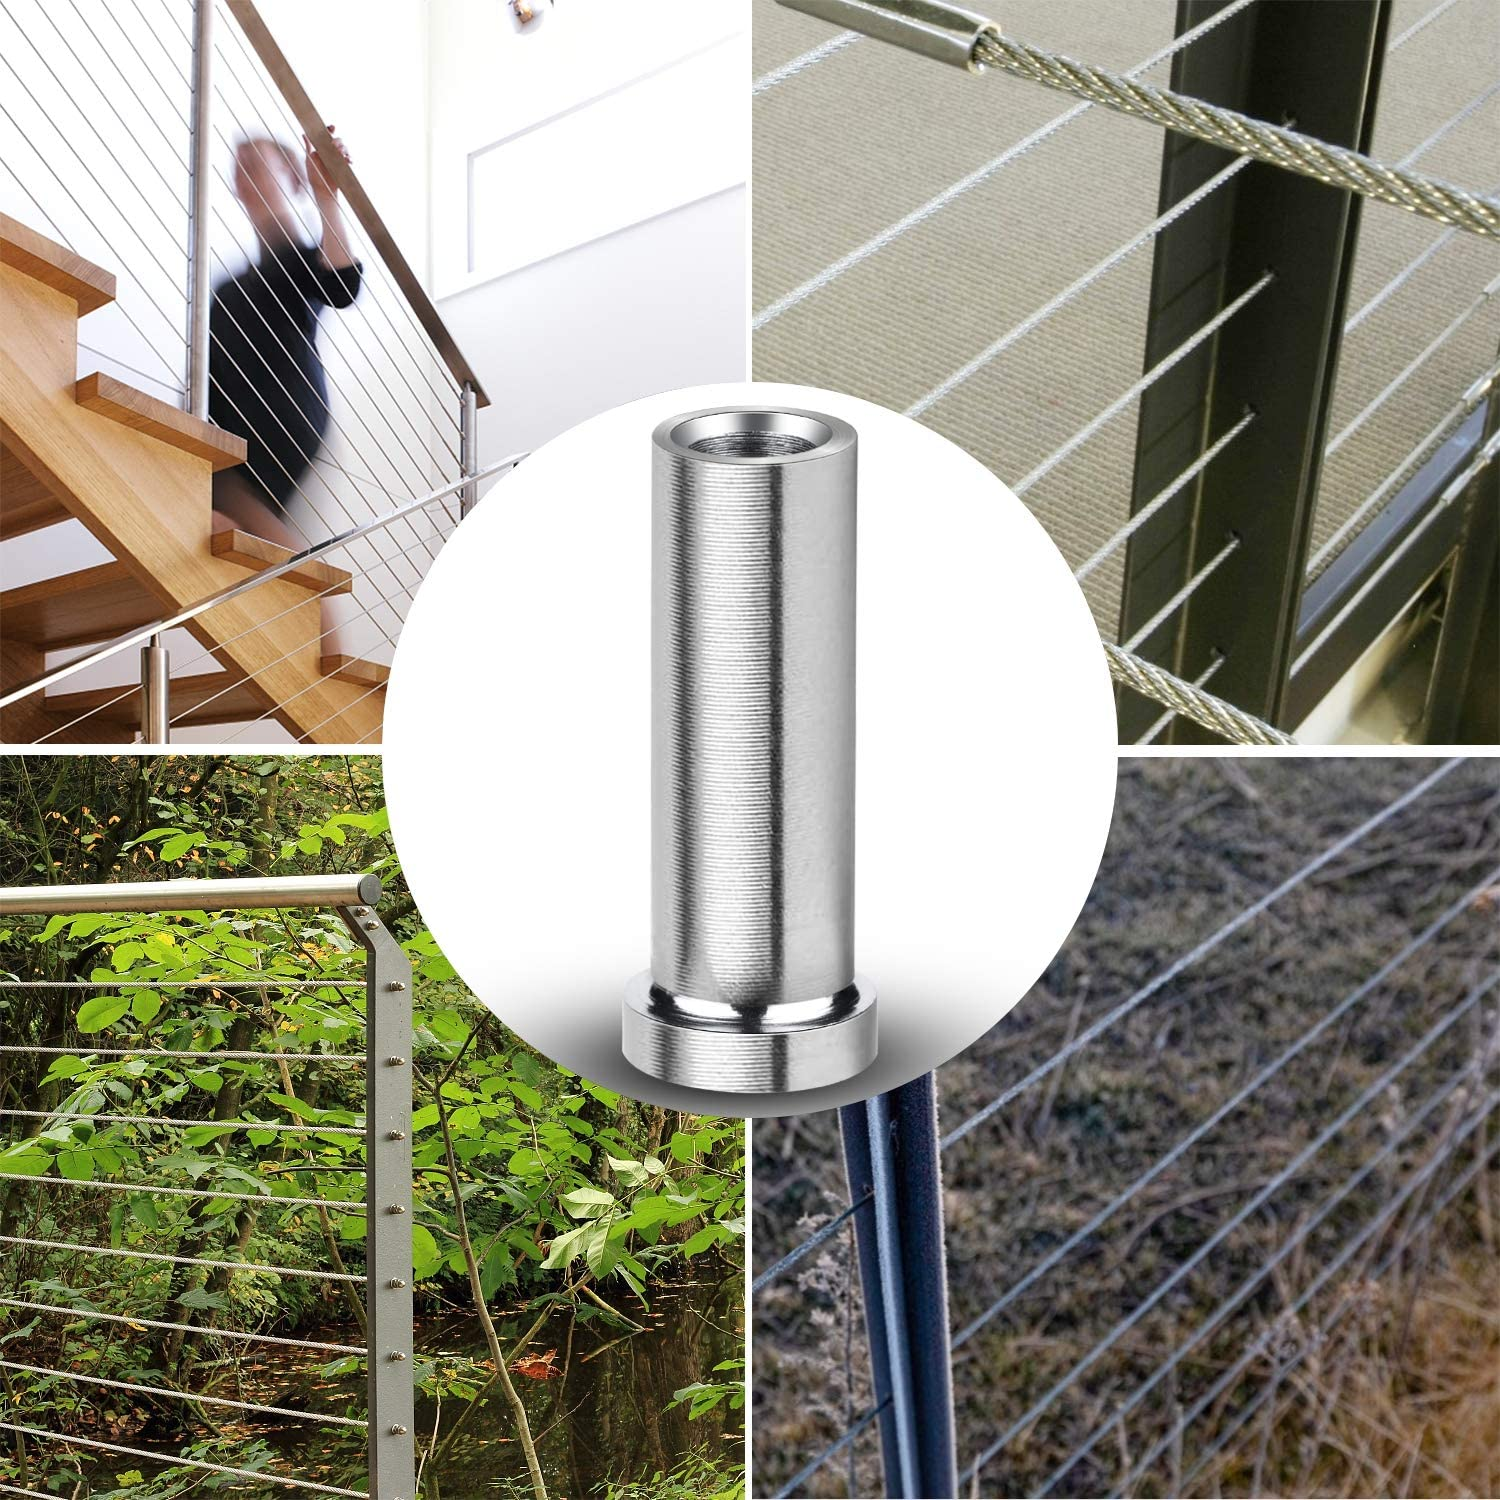 100 Pack T316 Stainless Steel Protector Sleeves for 1//8 Wire Rope Cable Railing DIY Balustrade T316 Marine Grade Come with A Free Drill Bit